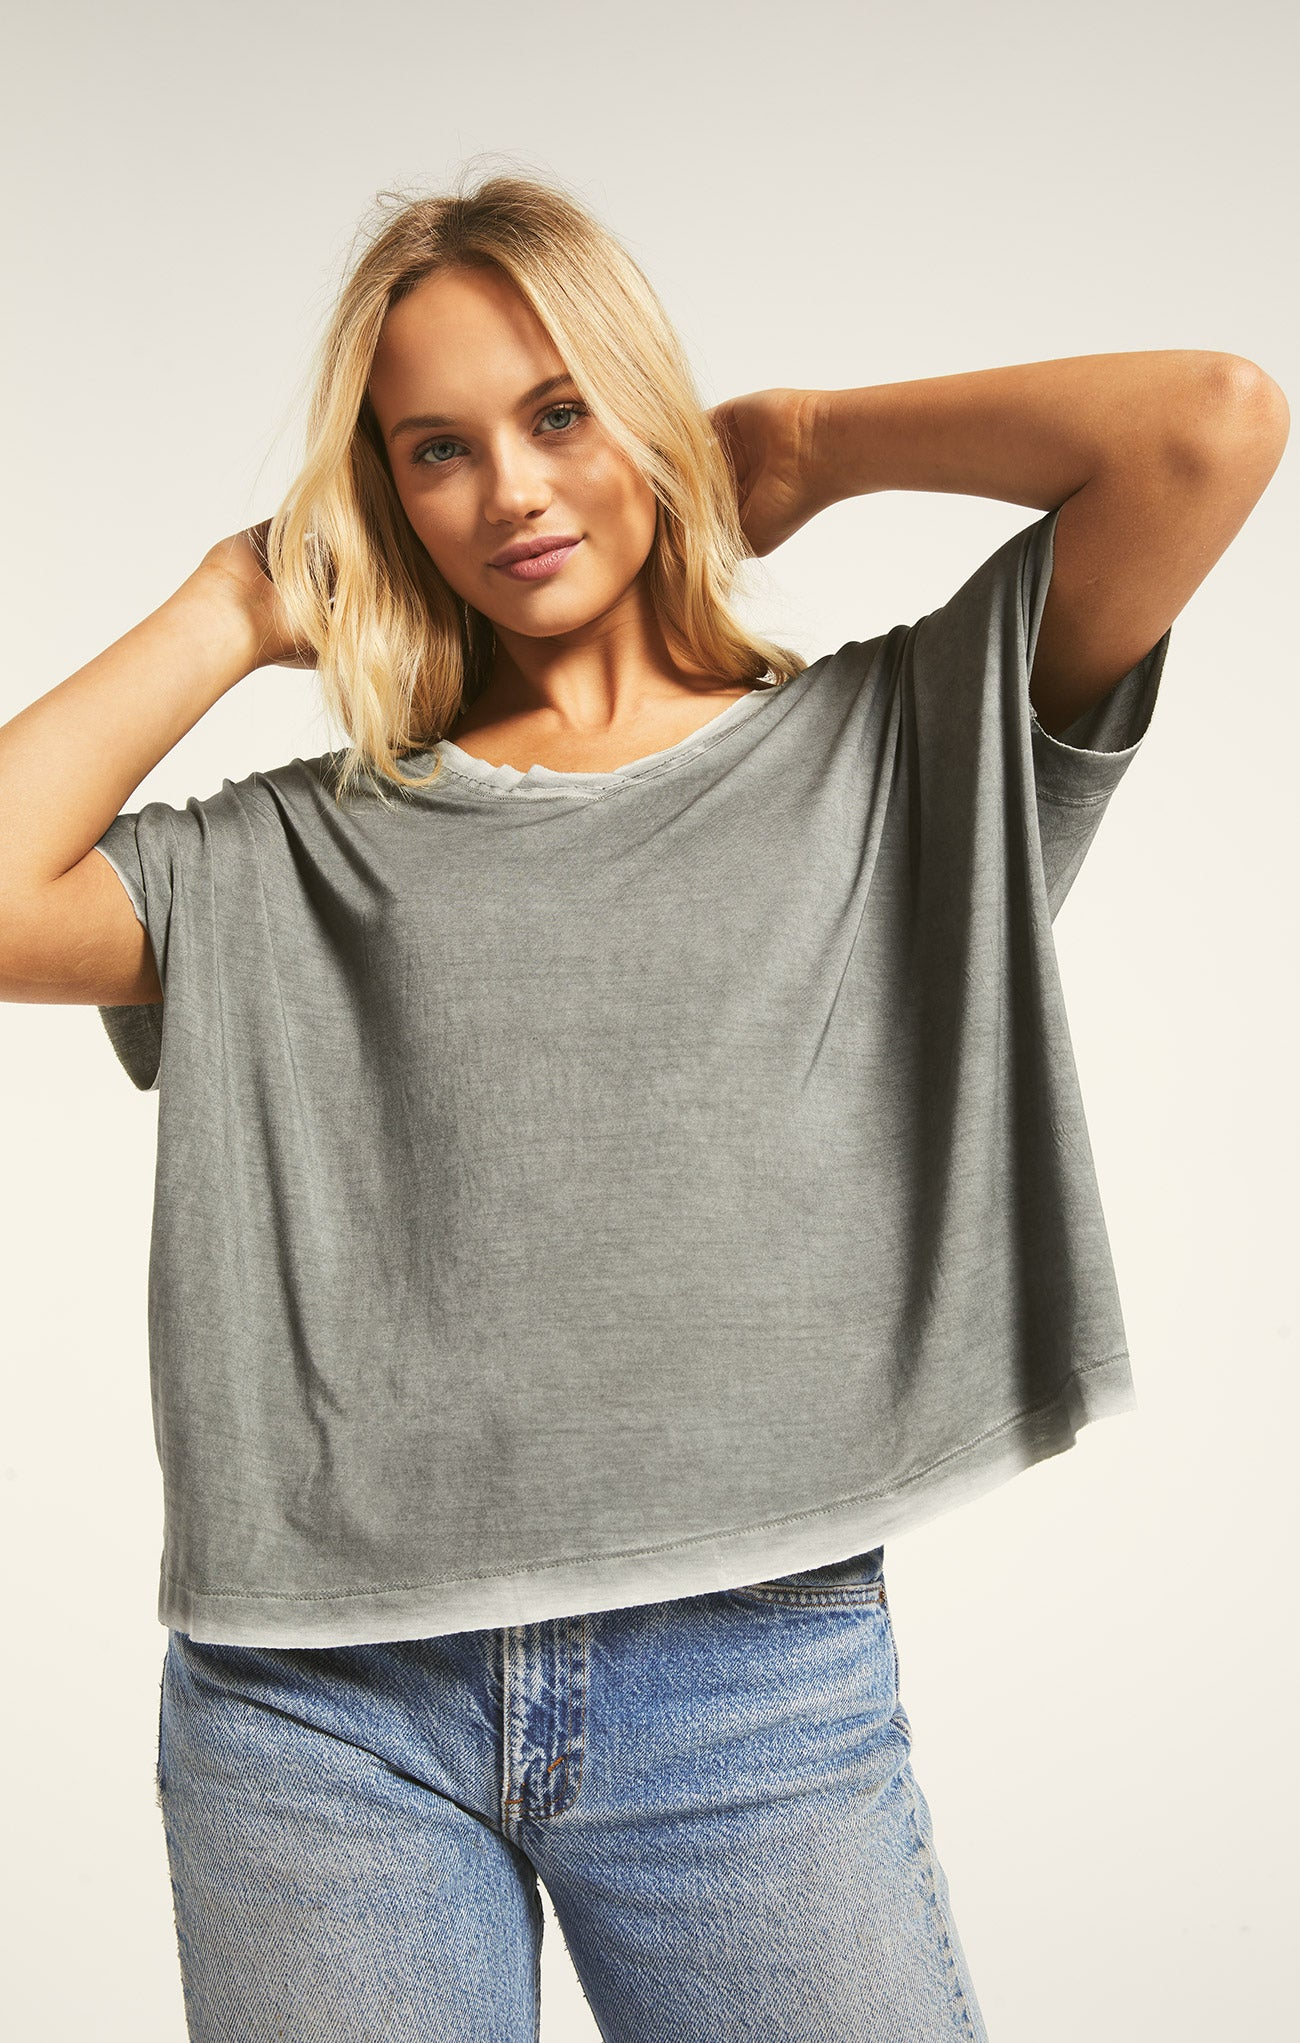 Tops Mischa Sleek V-Neck Tee Mischa Sleek V-Neck Tee